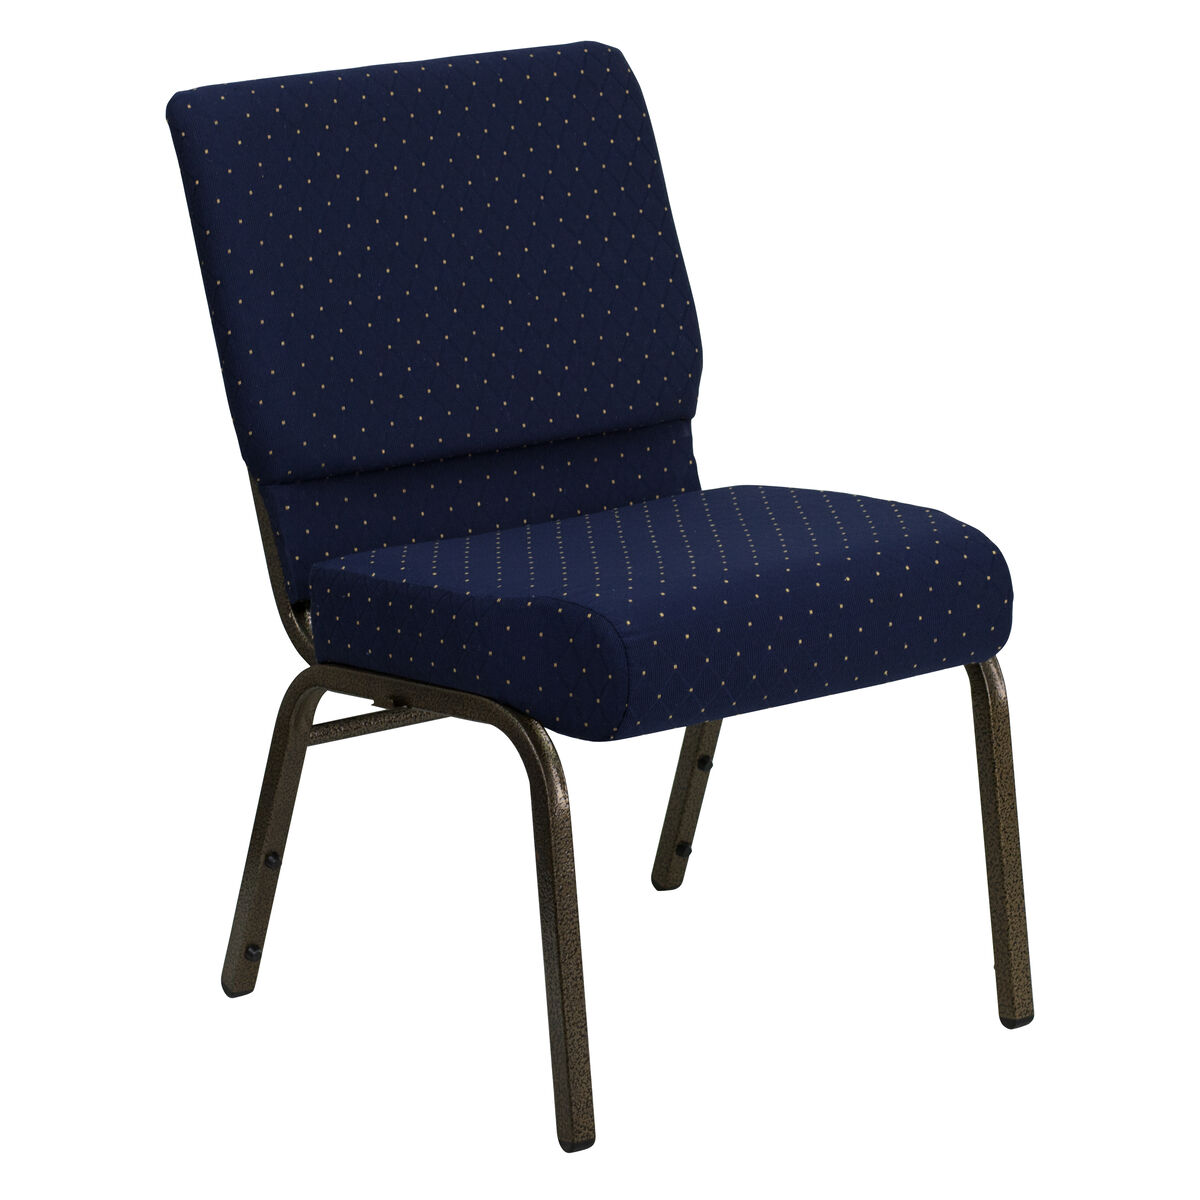 Stacking Church Chair in Navy Blue Dot Patterned Fabric